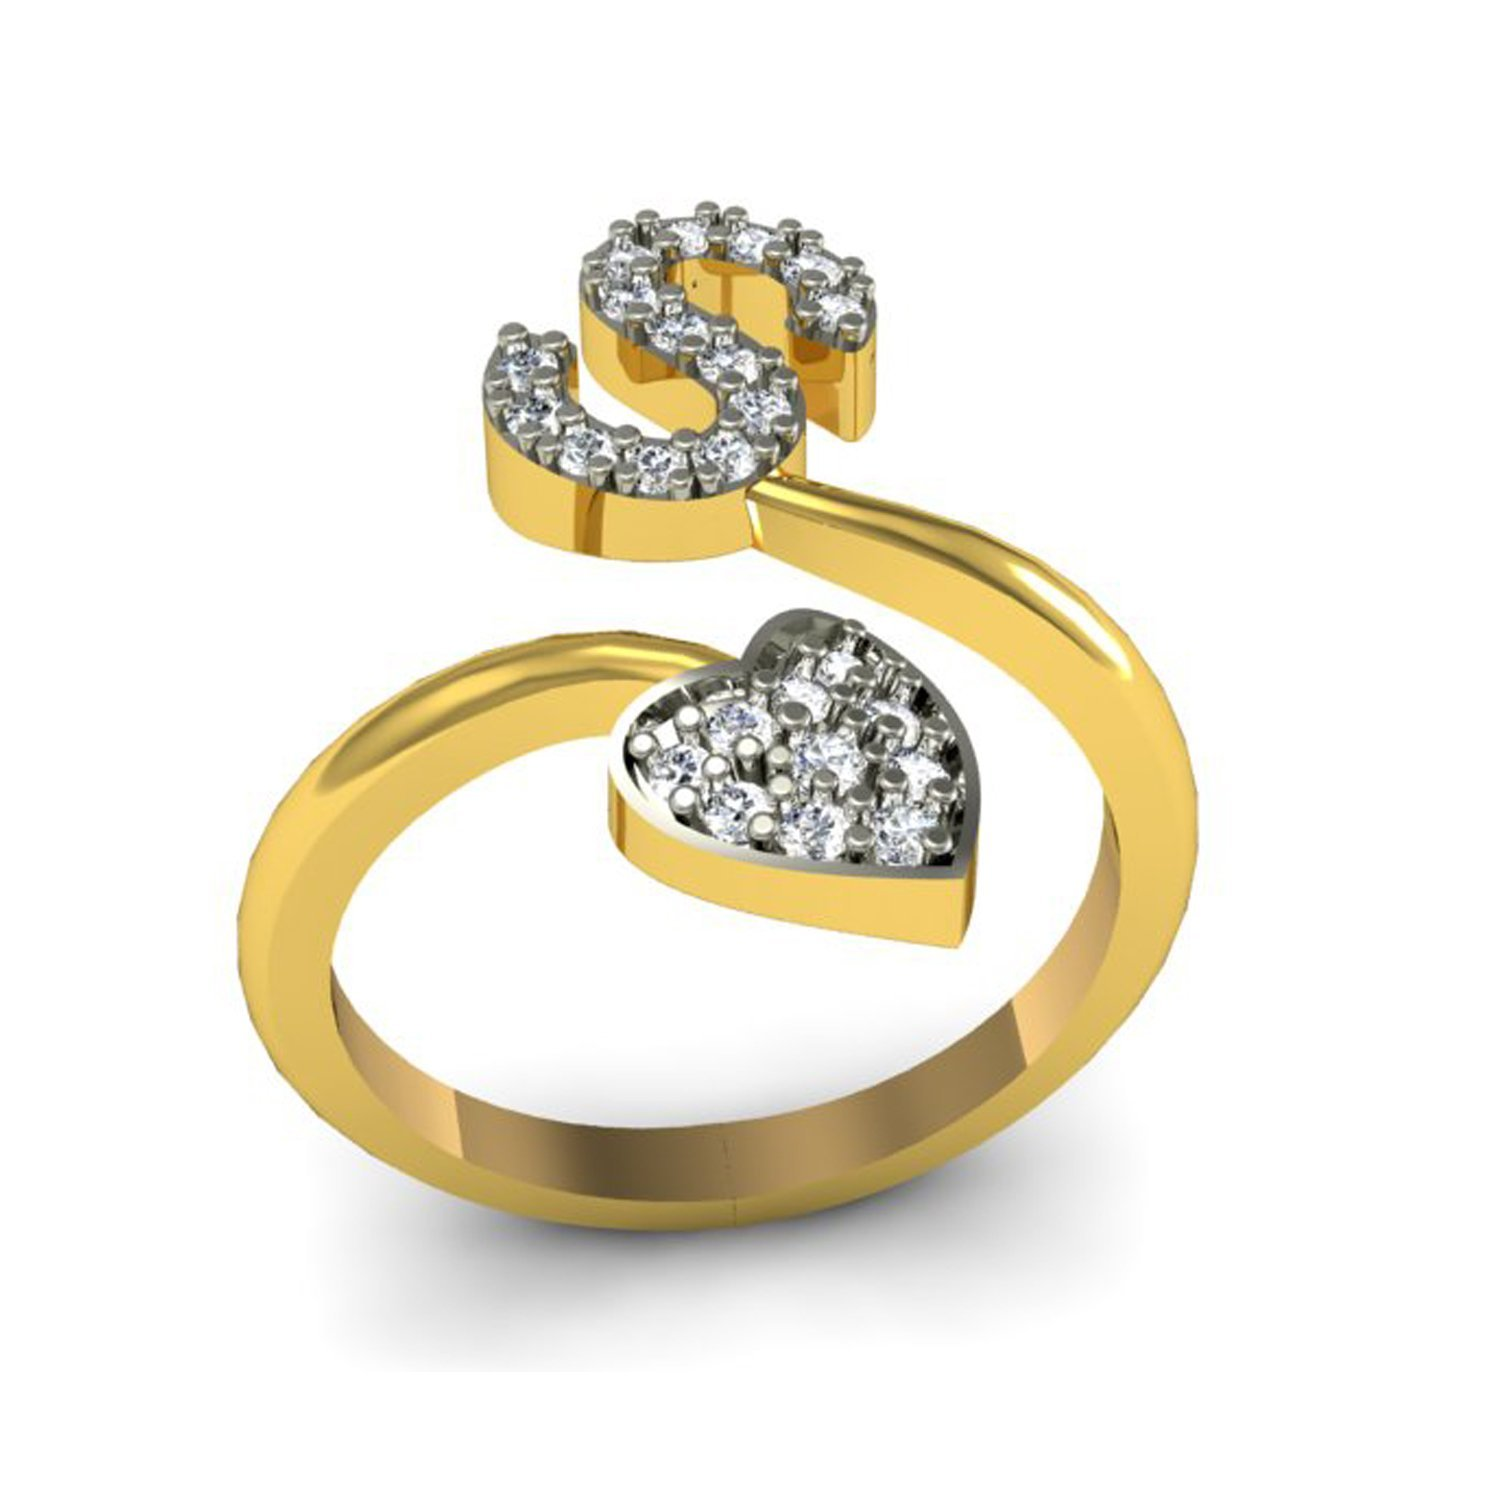 swarovski women for with product zirconia ziveg gold ring made silver sterling rings image jewellery